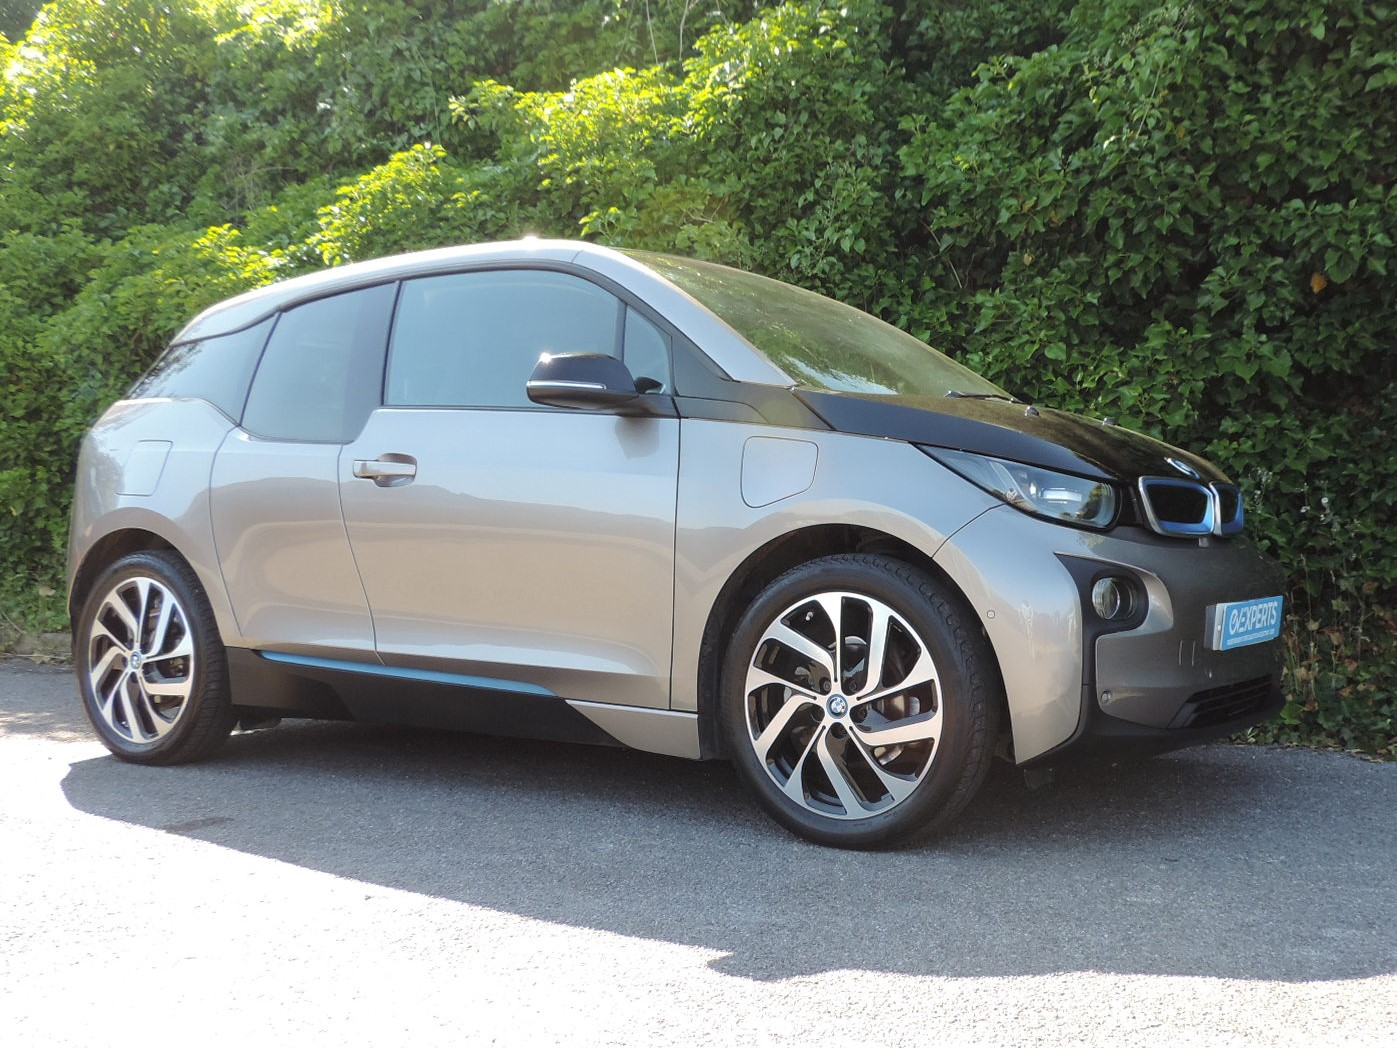 BMW i3 60Ah REX (2015) Andesit Silver / Suite Leather